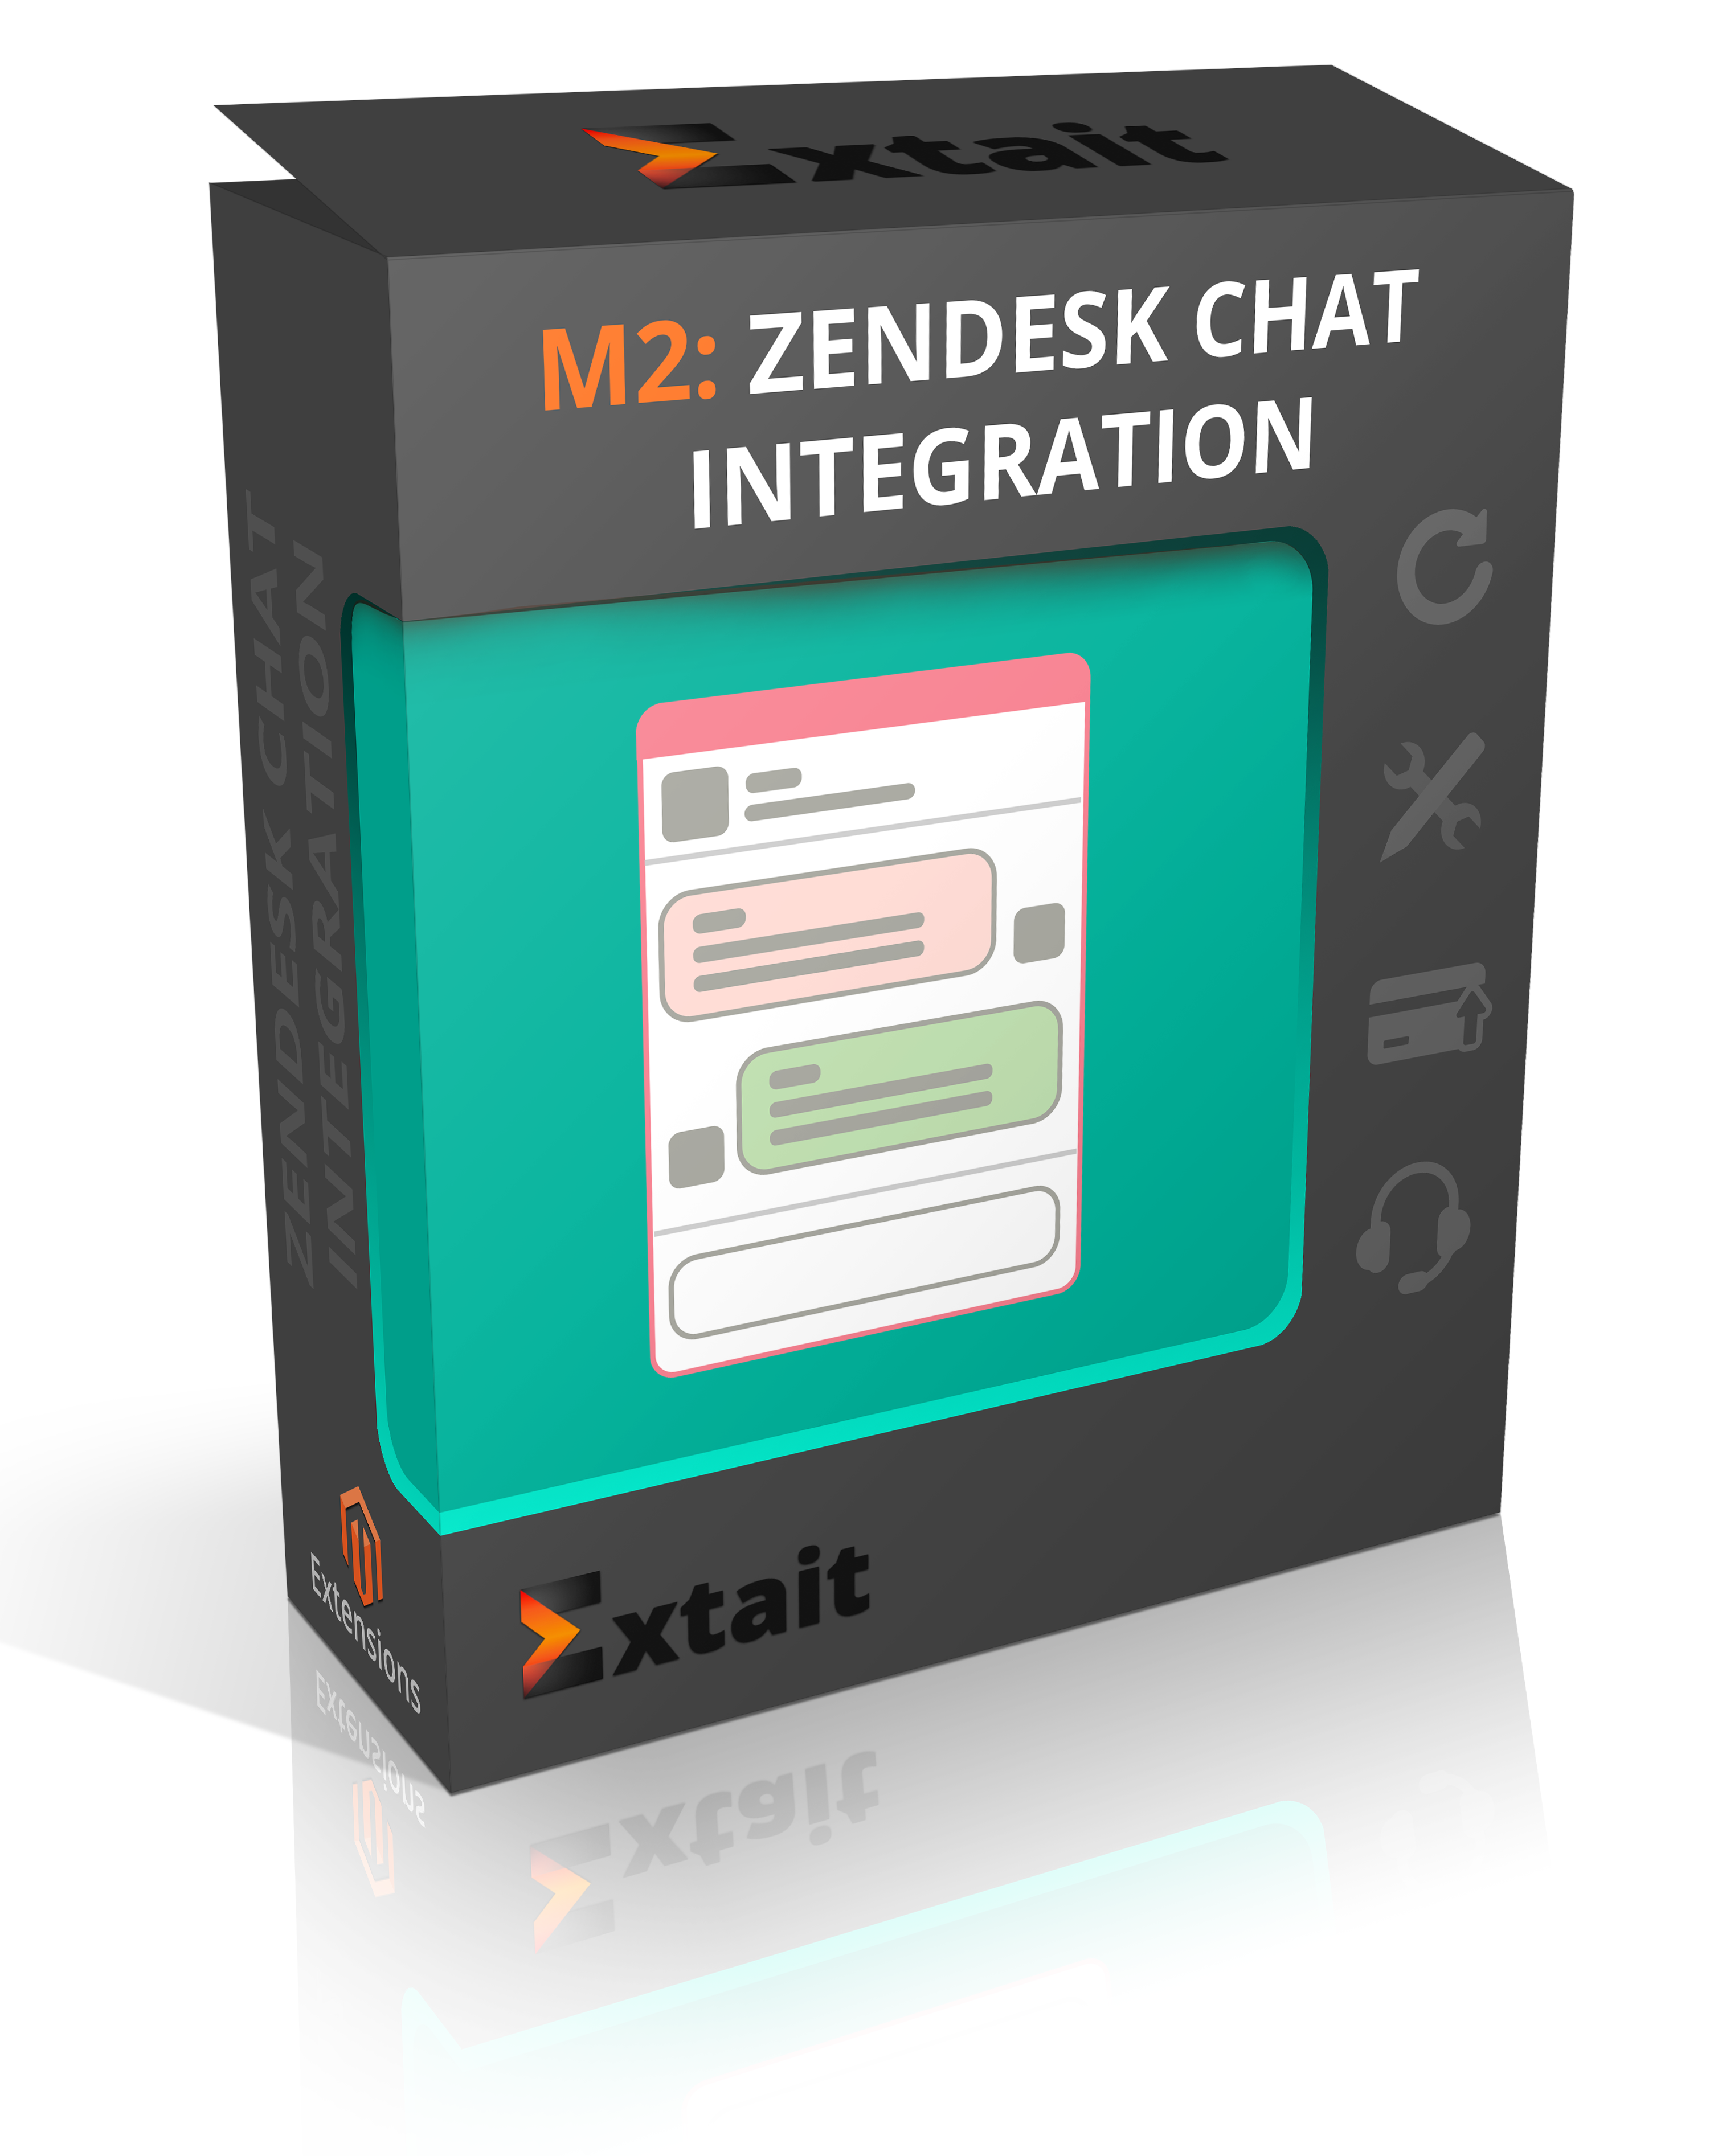 Zendesk Chat Integration